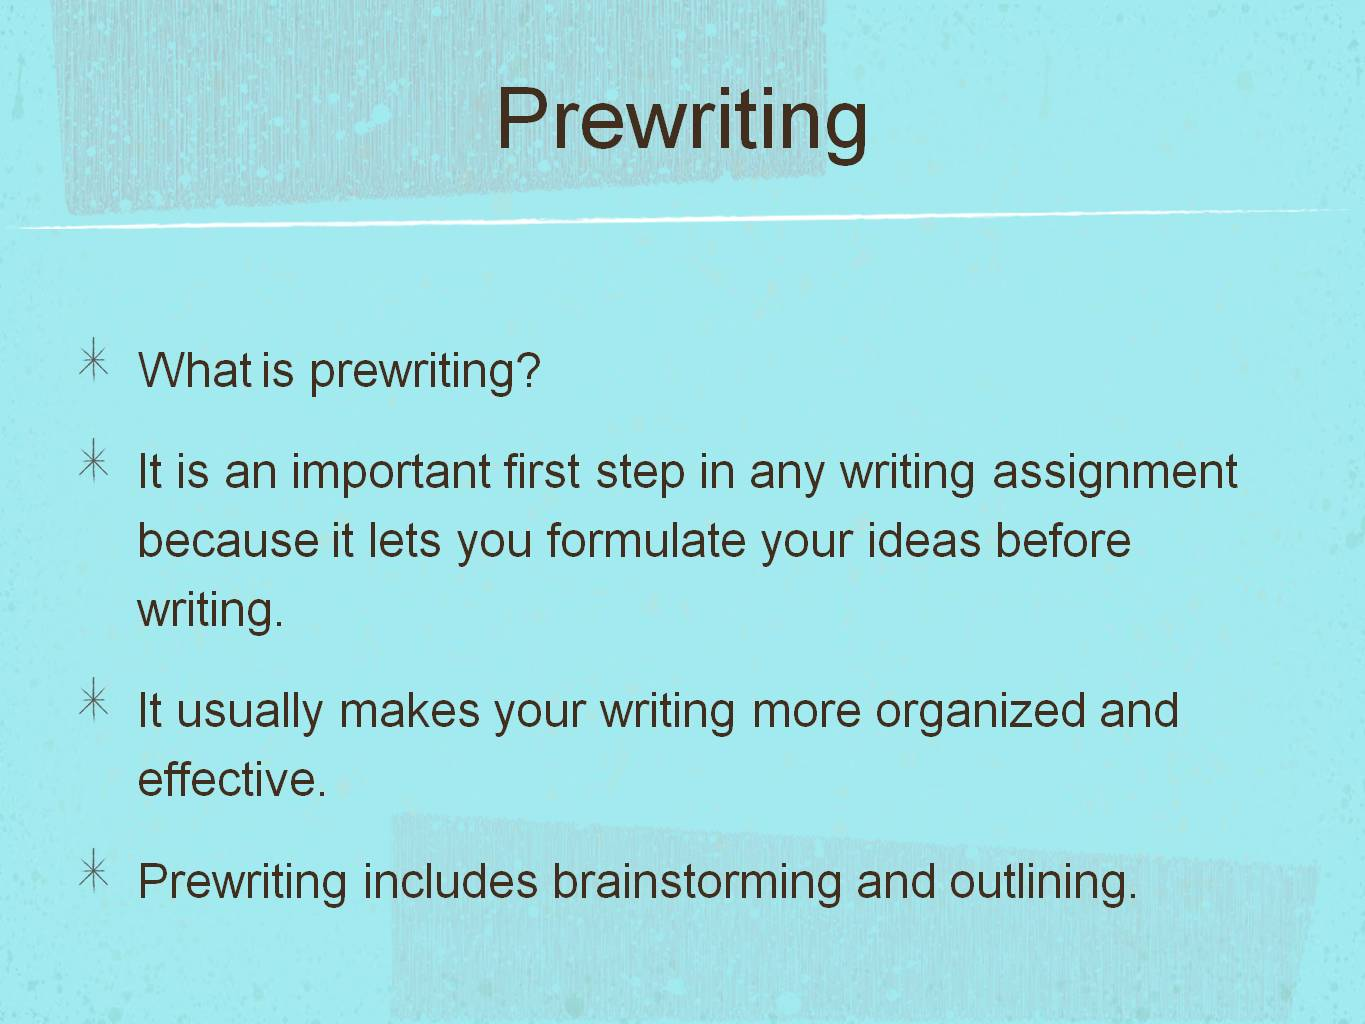 reading and responding essay structure Writing a reaction or response essay reaction or response papers are usually requested by teachers so that you'll consider carefully what you think or feel about something you've read the following guidelines are intended to be used for reacting to a reading although they could easily be used for reactions to films too.